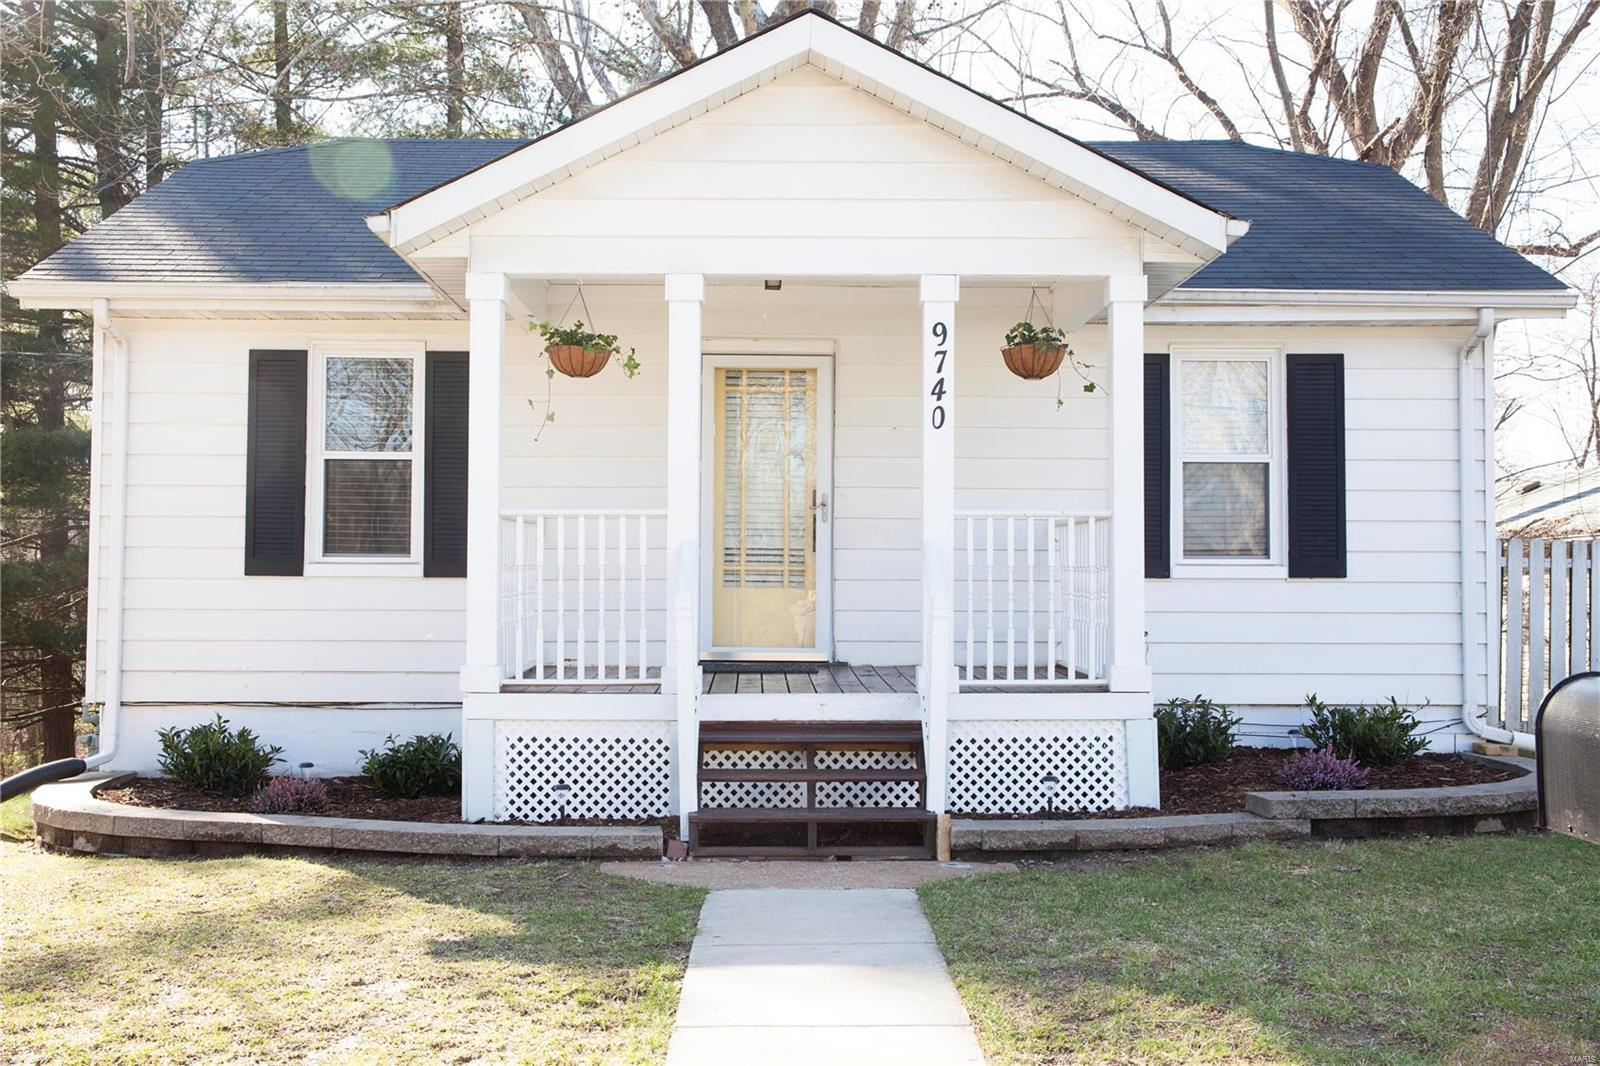 Fairview Heights Real Estate | Find Homes for Sale in Fairview ...